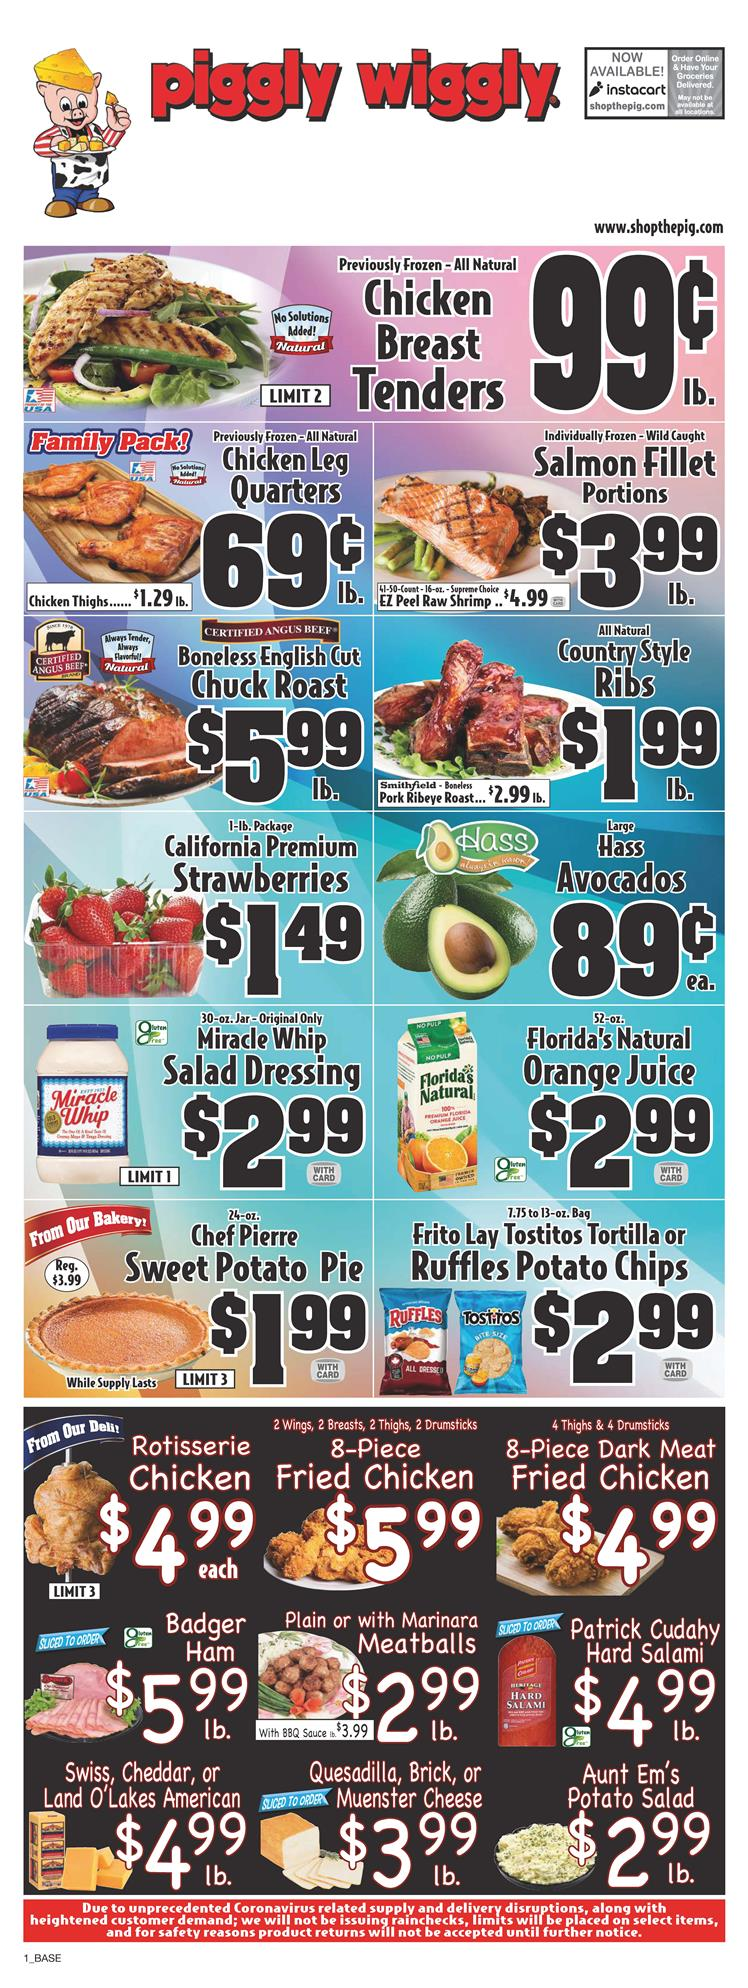 piggly wiggly ad jun 10 2020